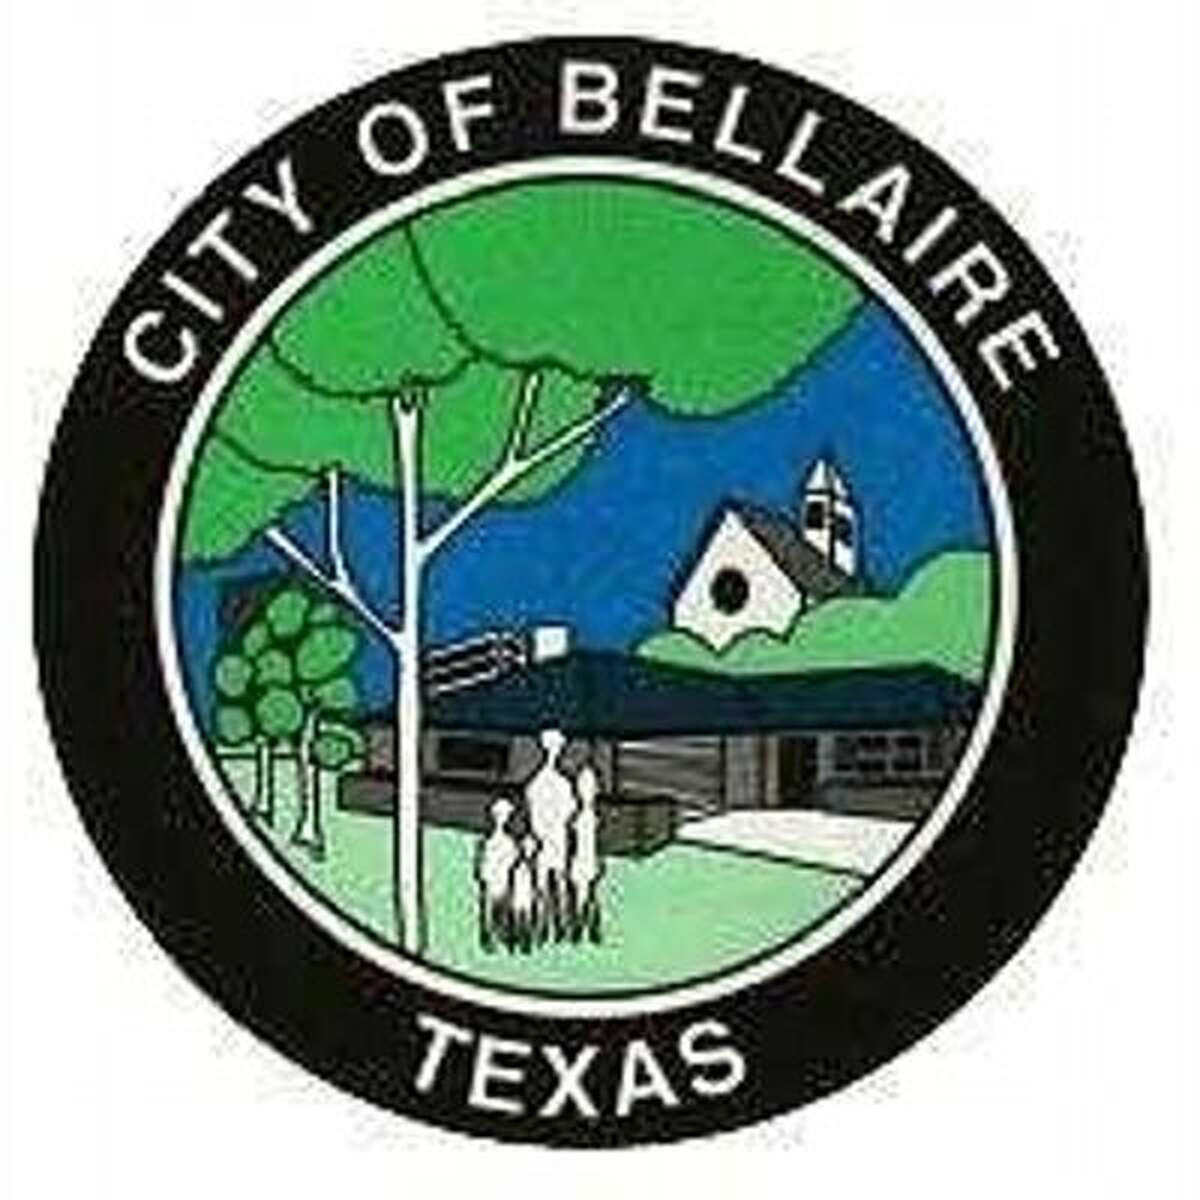 City of Bellaire, Texas